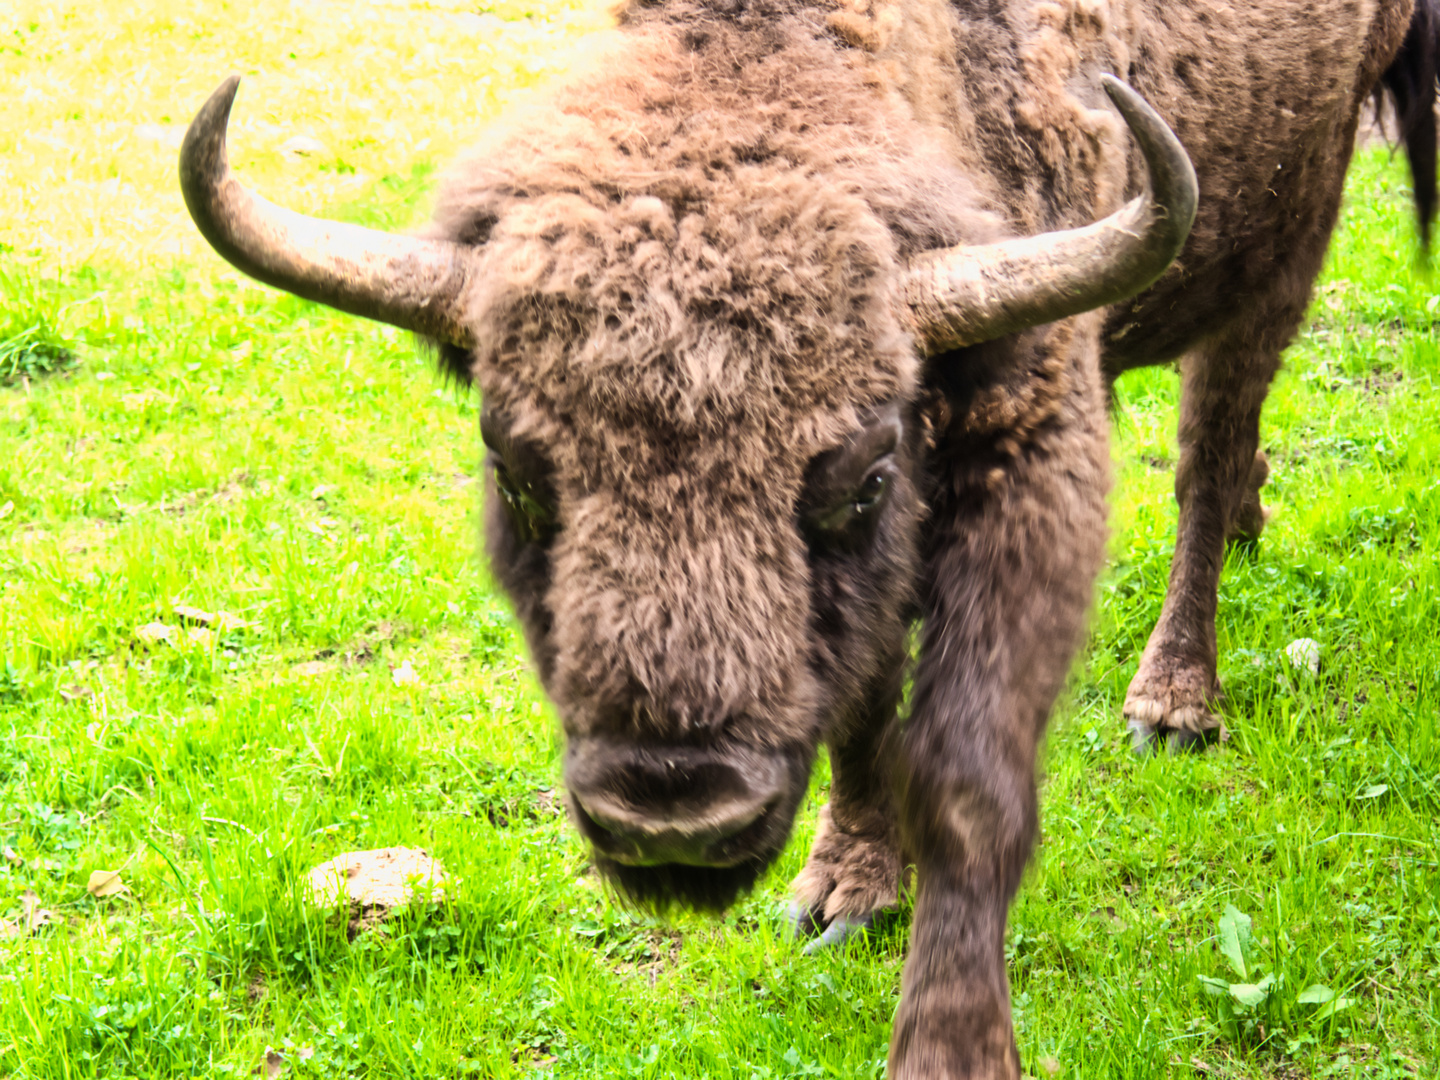 Meeting with Bison